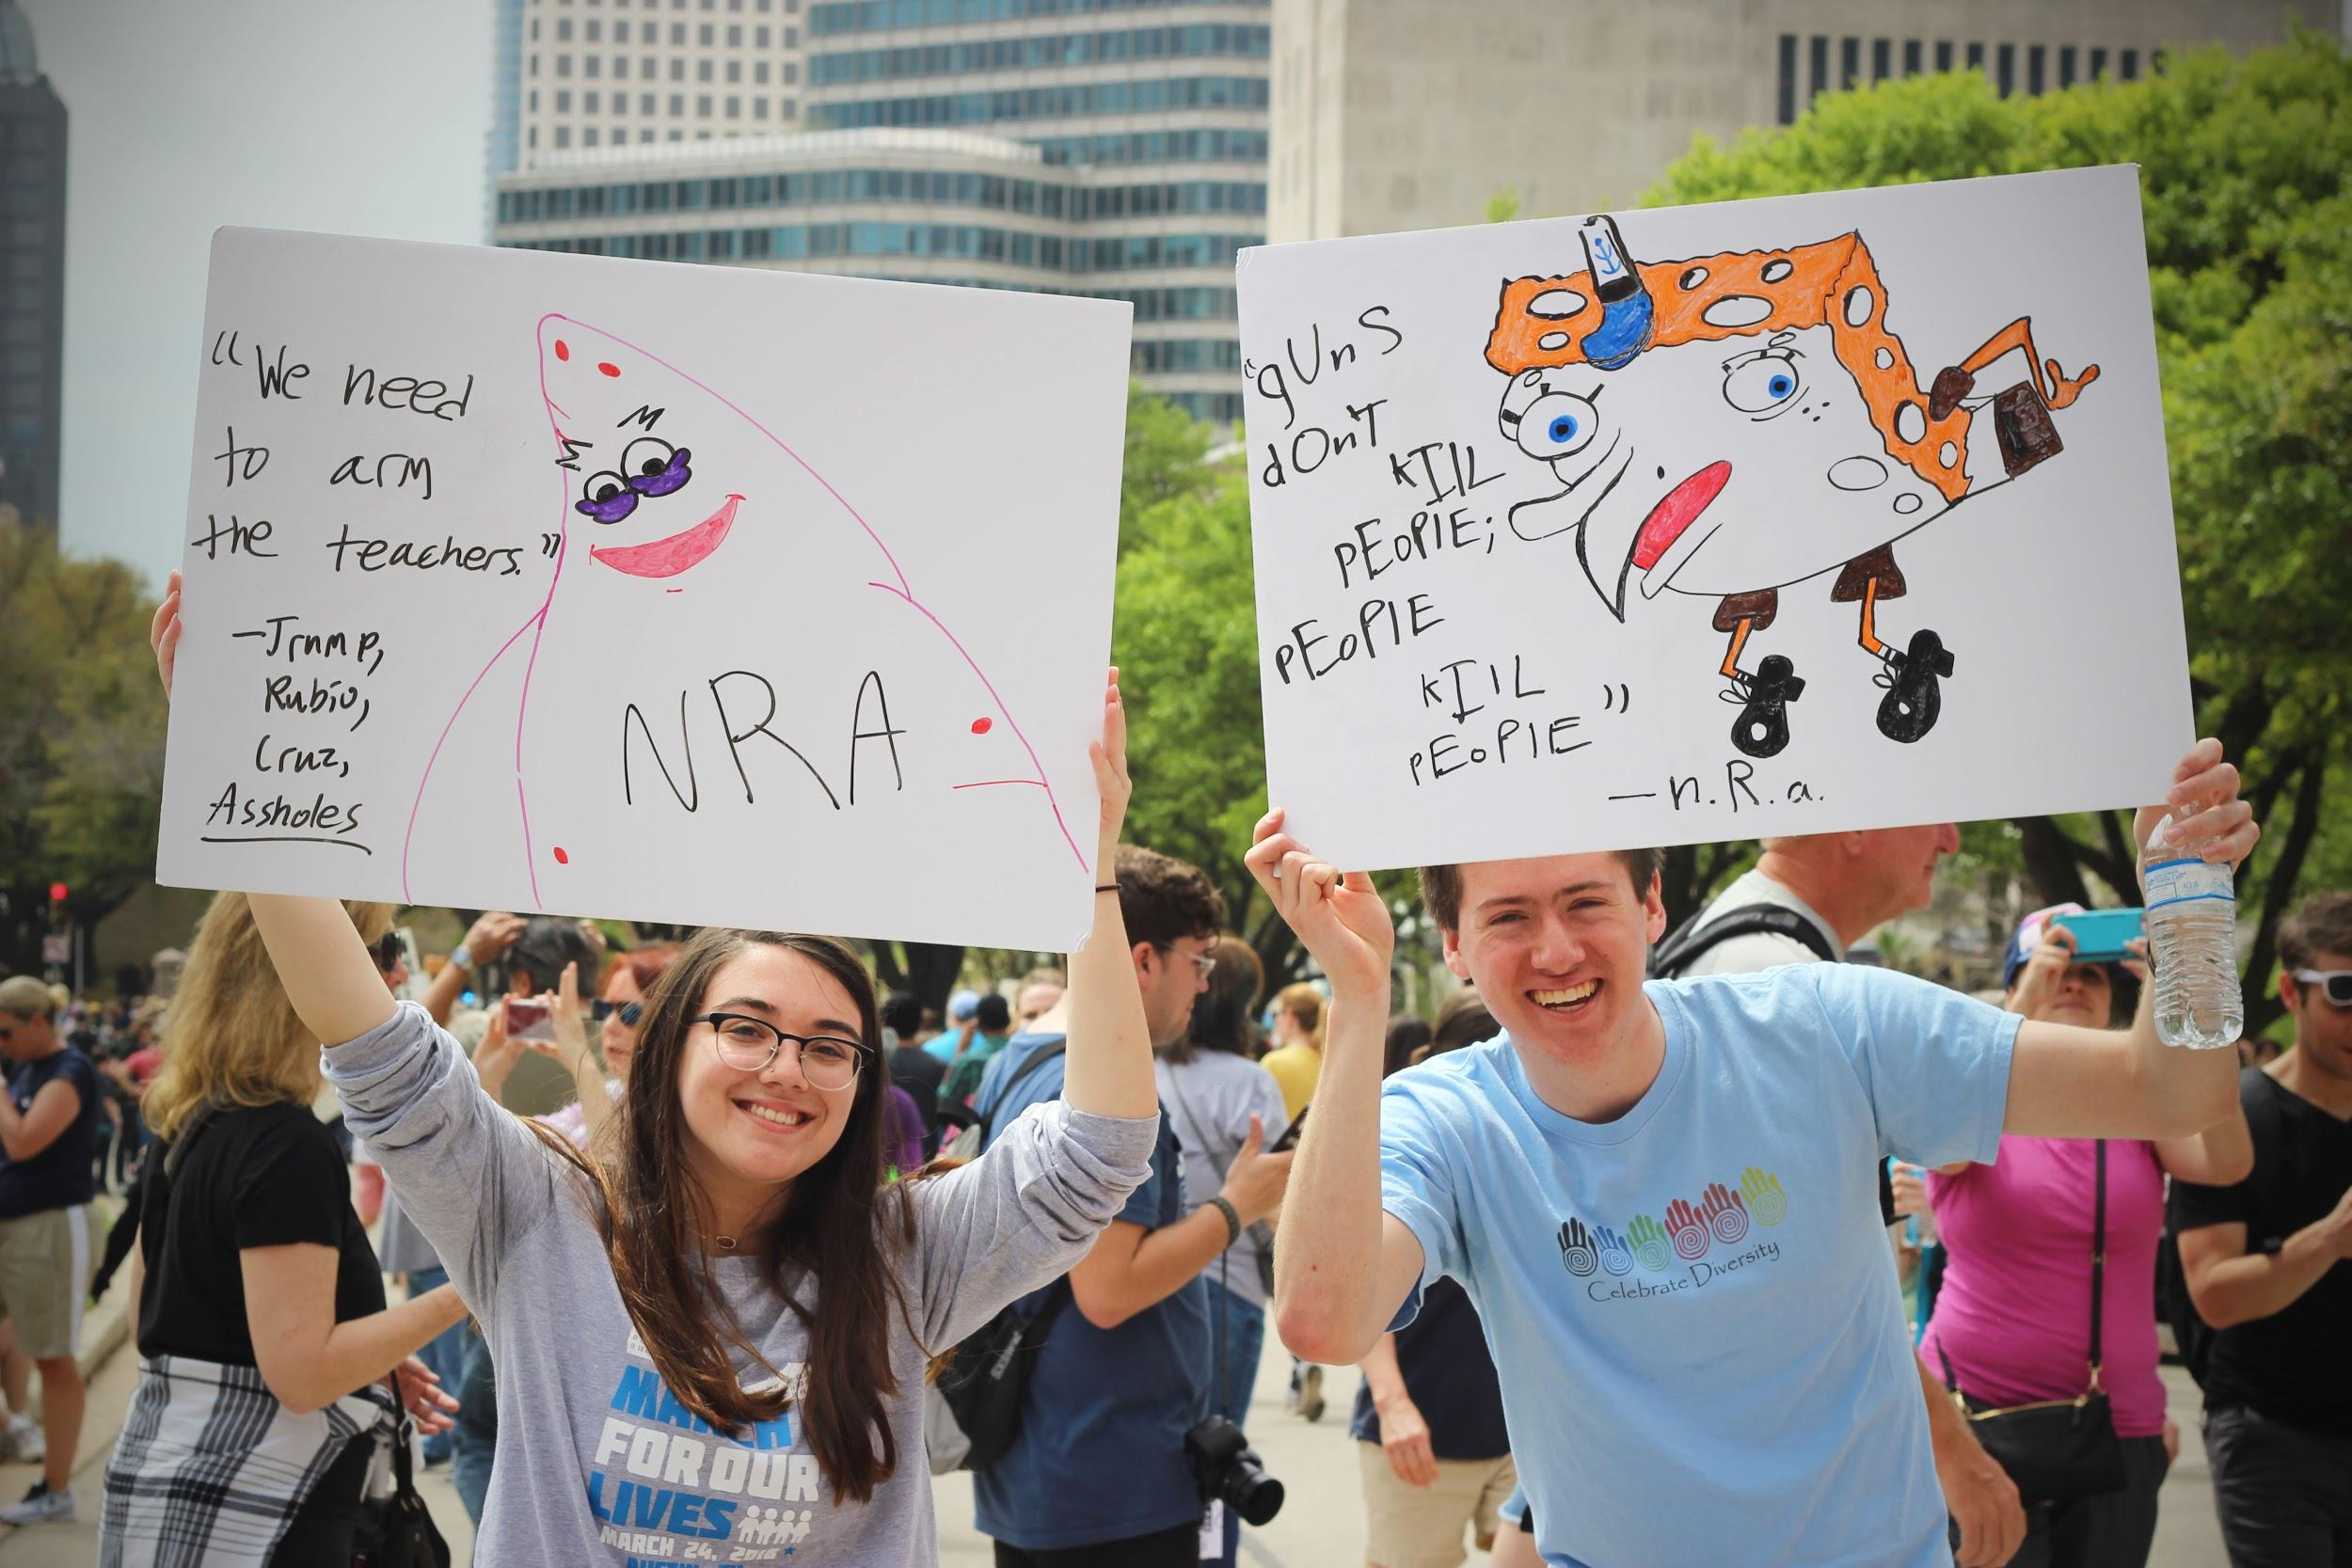 UT students send a message based off of memes to the NRA.